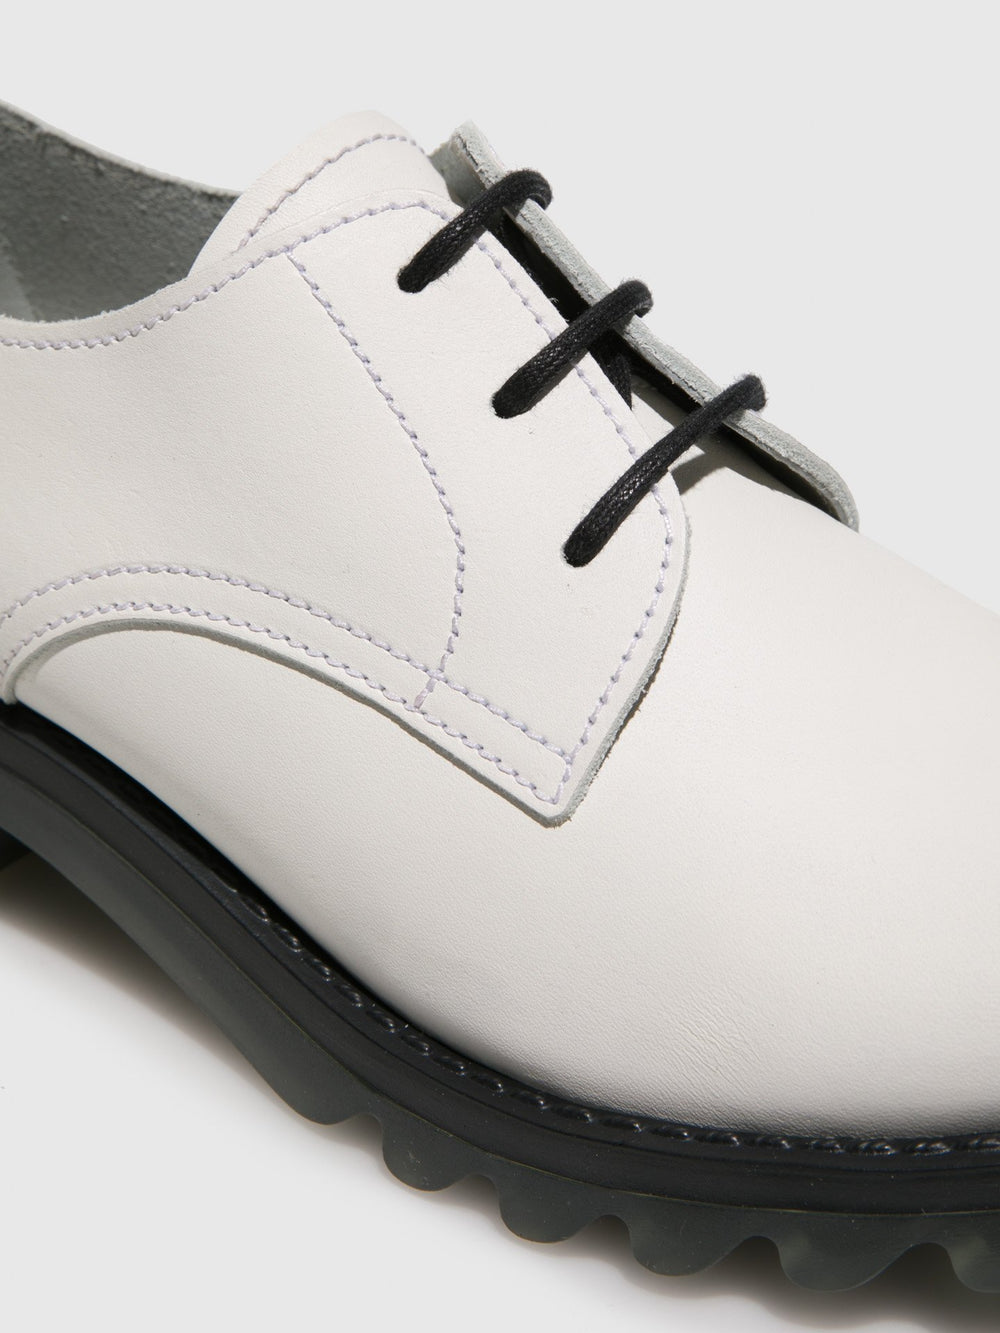 White Lace-up Shoes